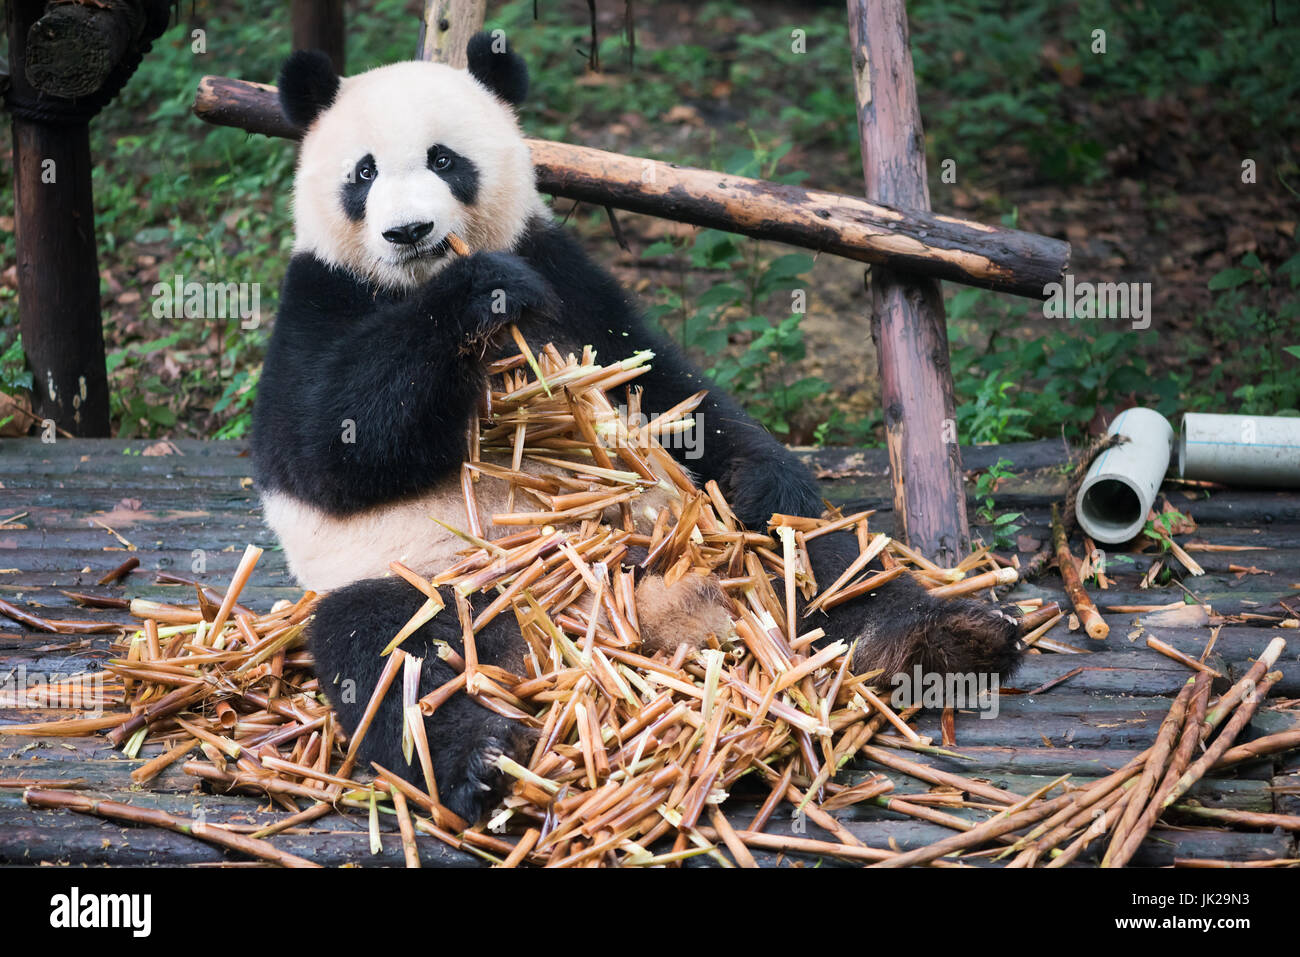 Giant panda sitting on wood and eatin a lot of bamboo, Chengdu, Sichuan Province, China - Stock Image